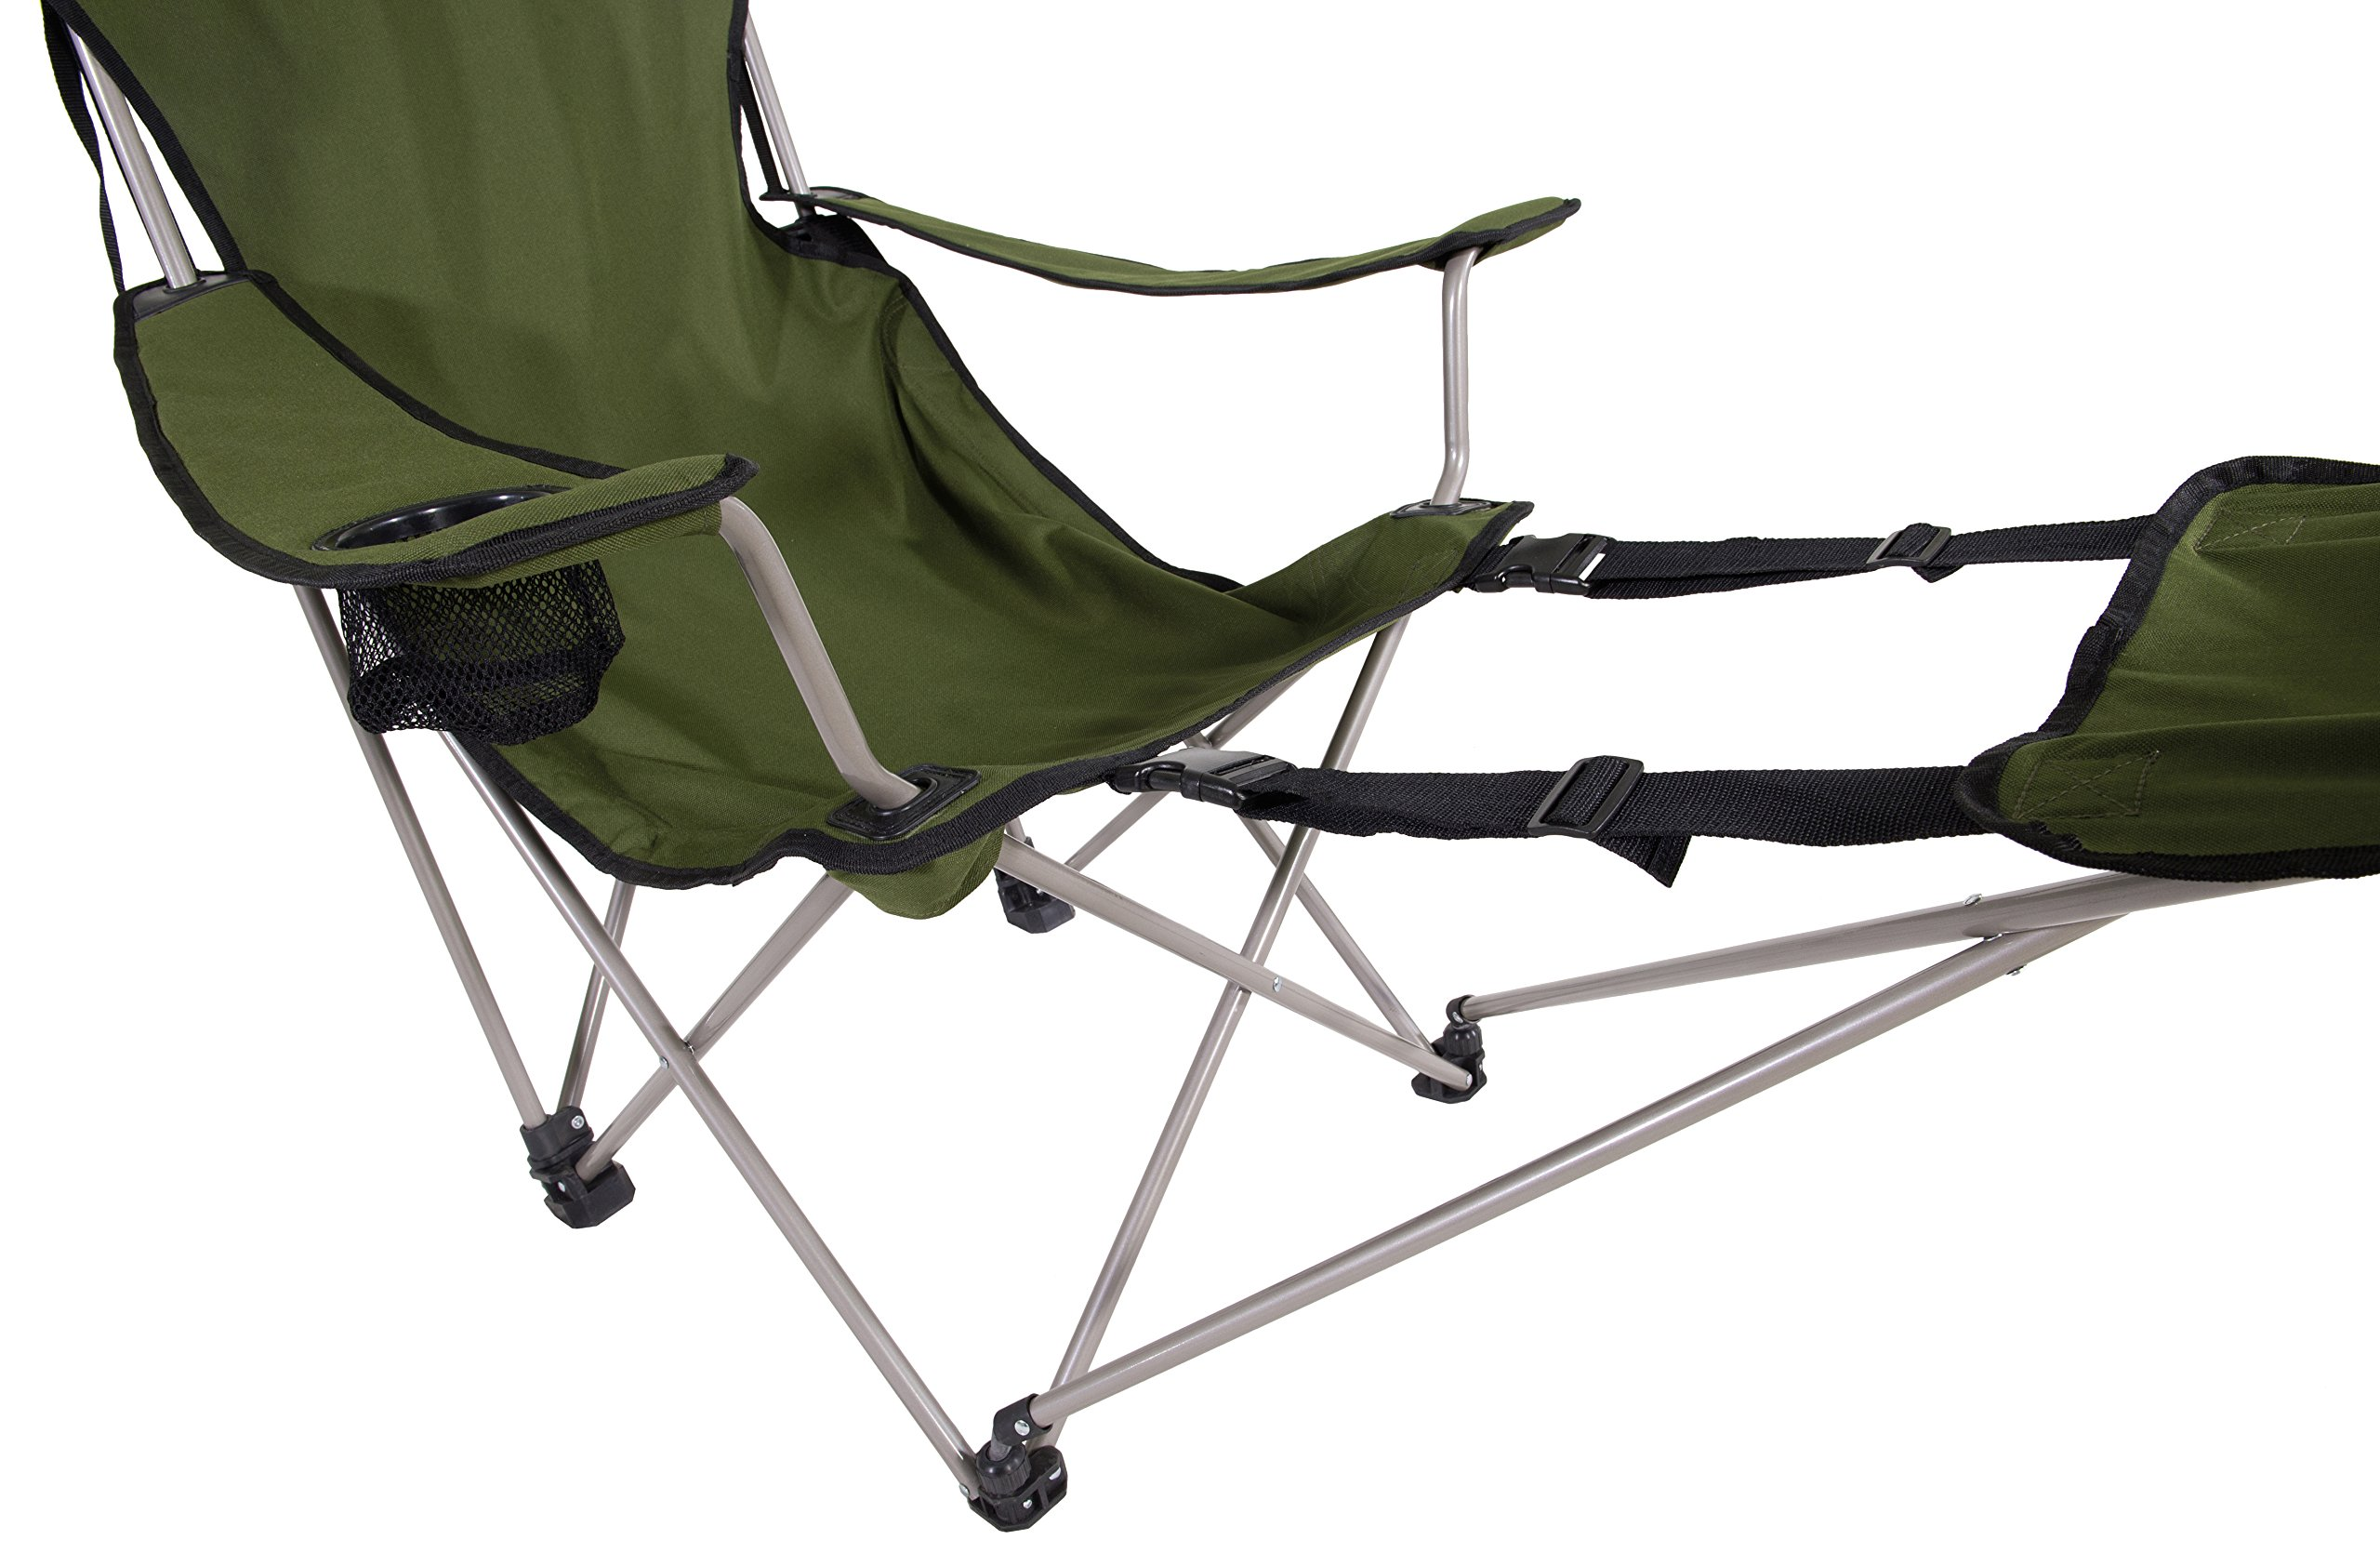 Folding Lounger Portable Camping Recliner Beach Chair W